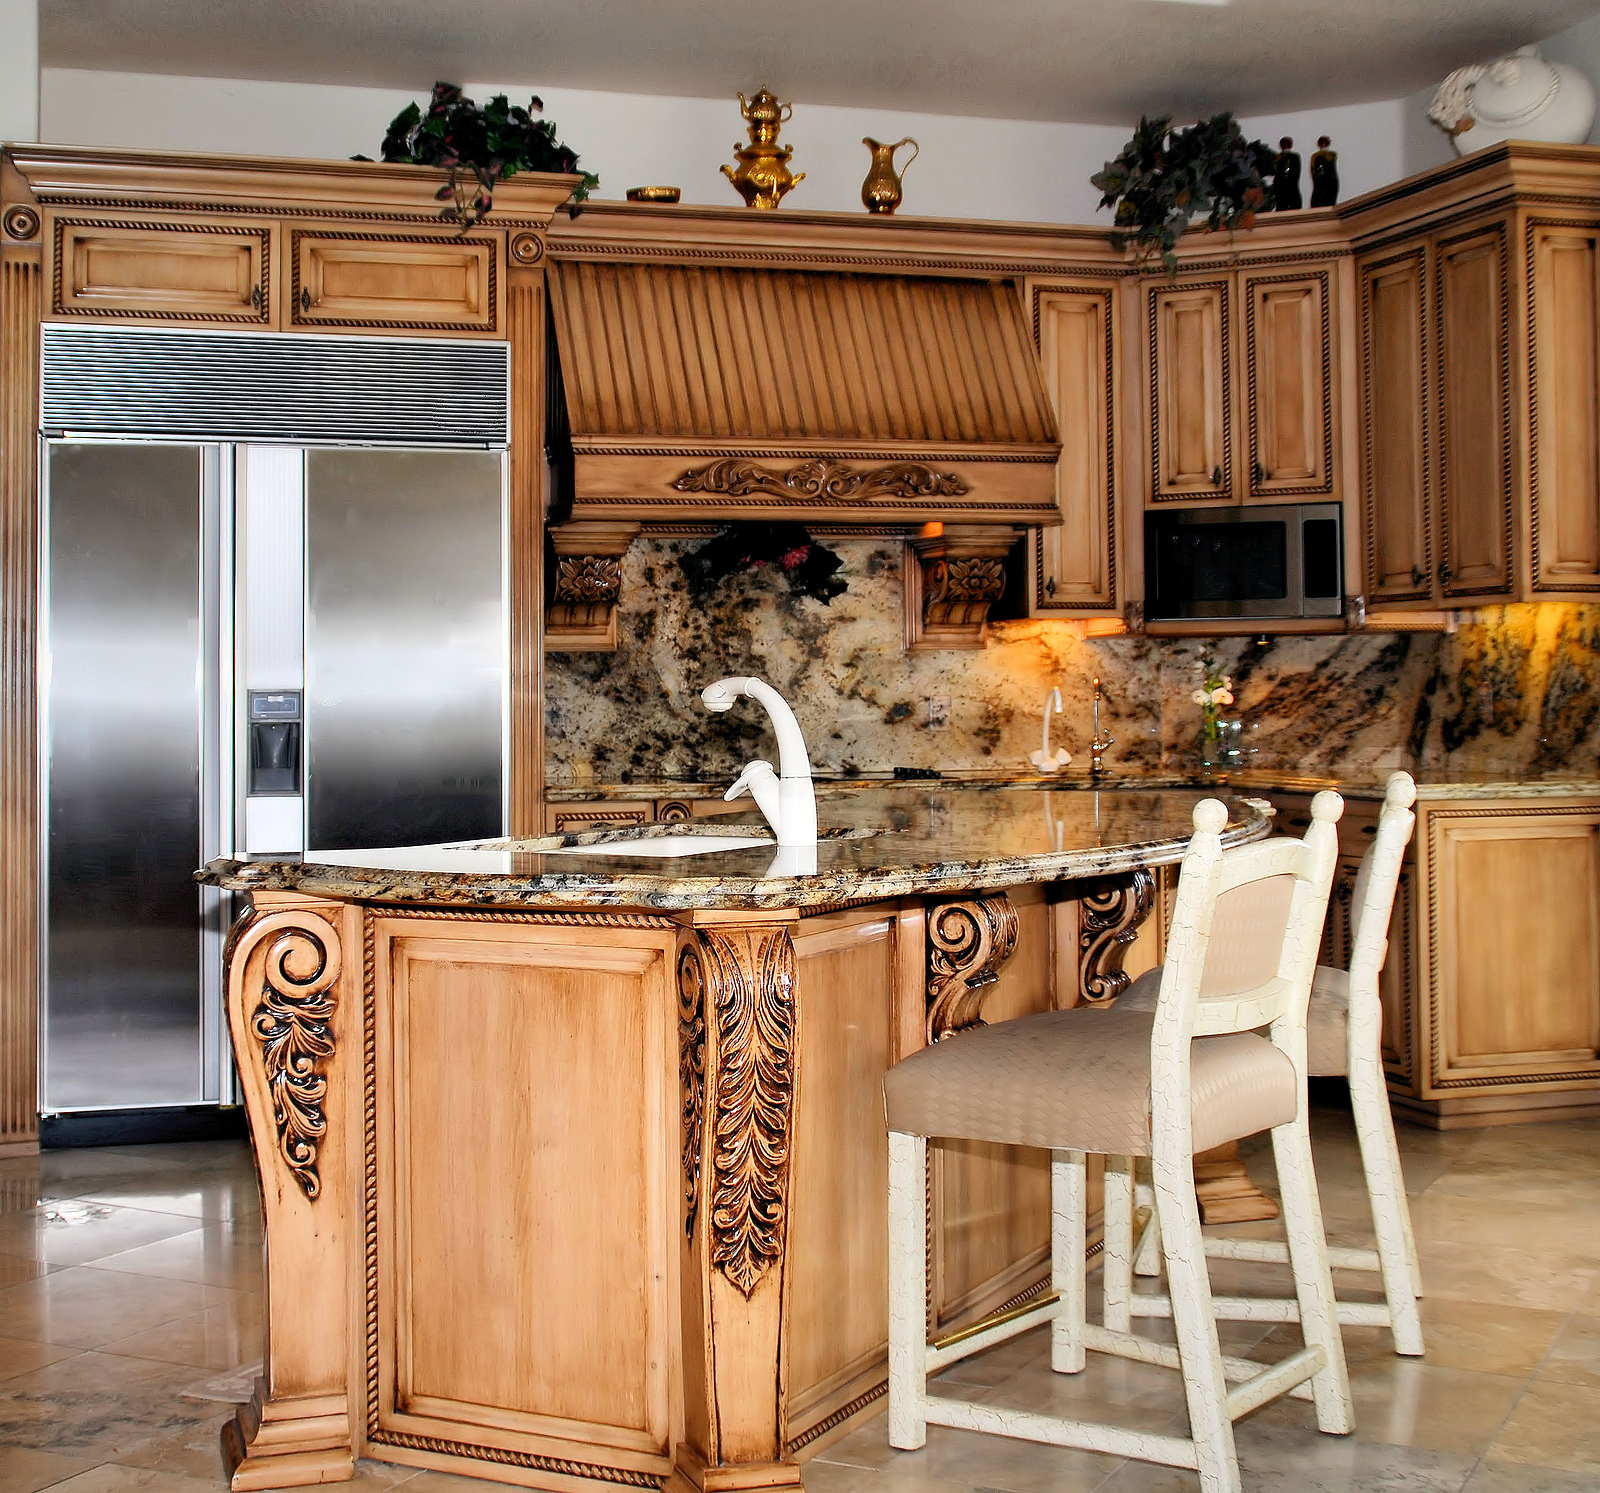 Kitchen Island Additions: Fresh Look Design Your Own Kitchen Carved Wood Cabinet